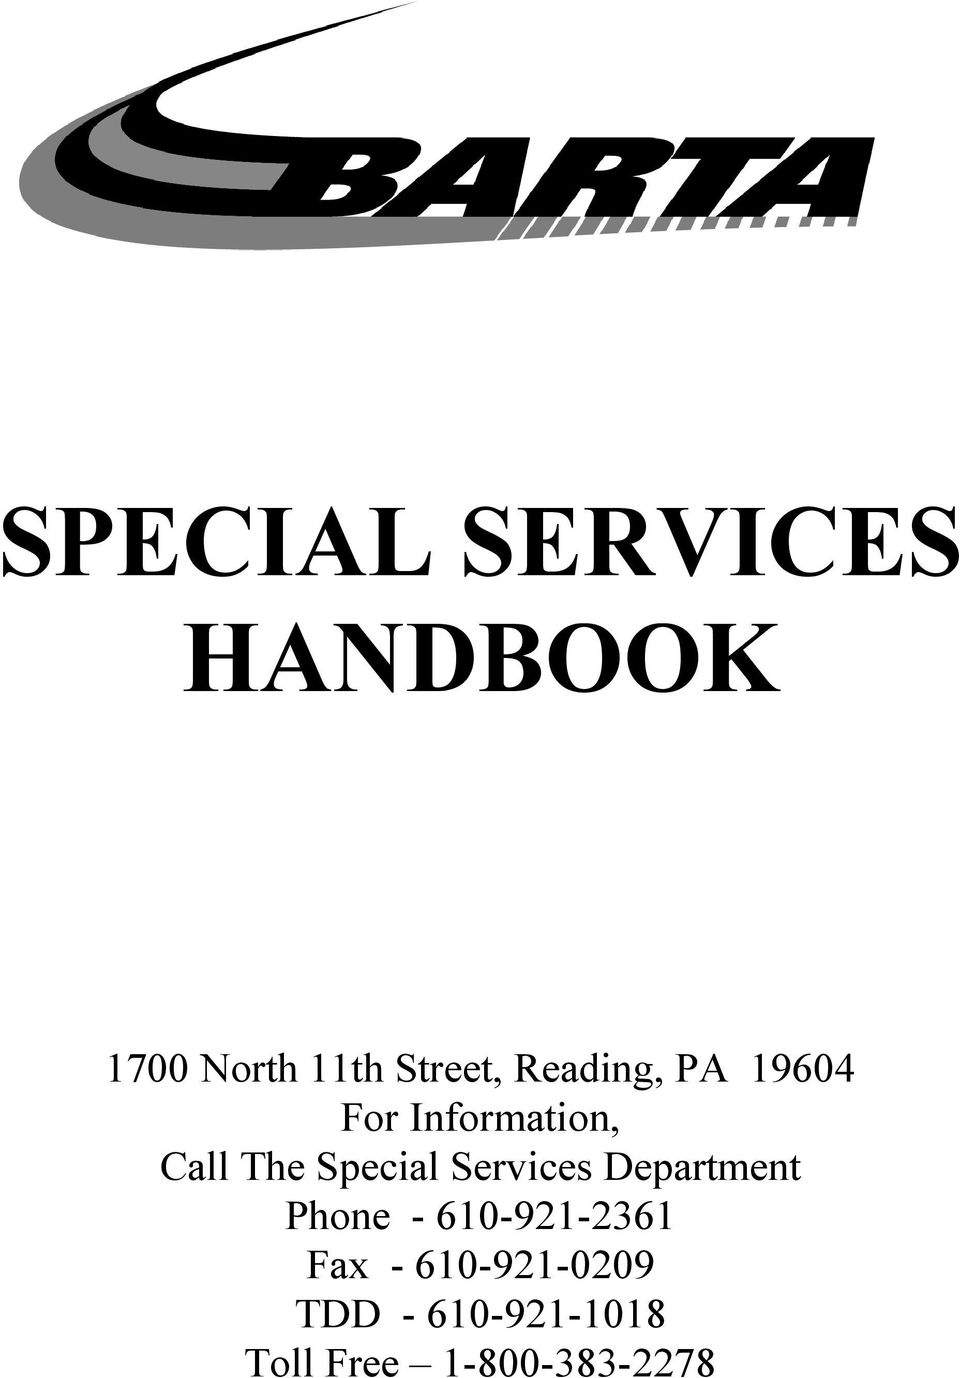 Services Department Phone - 610-921-2361 Fax -